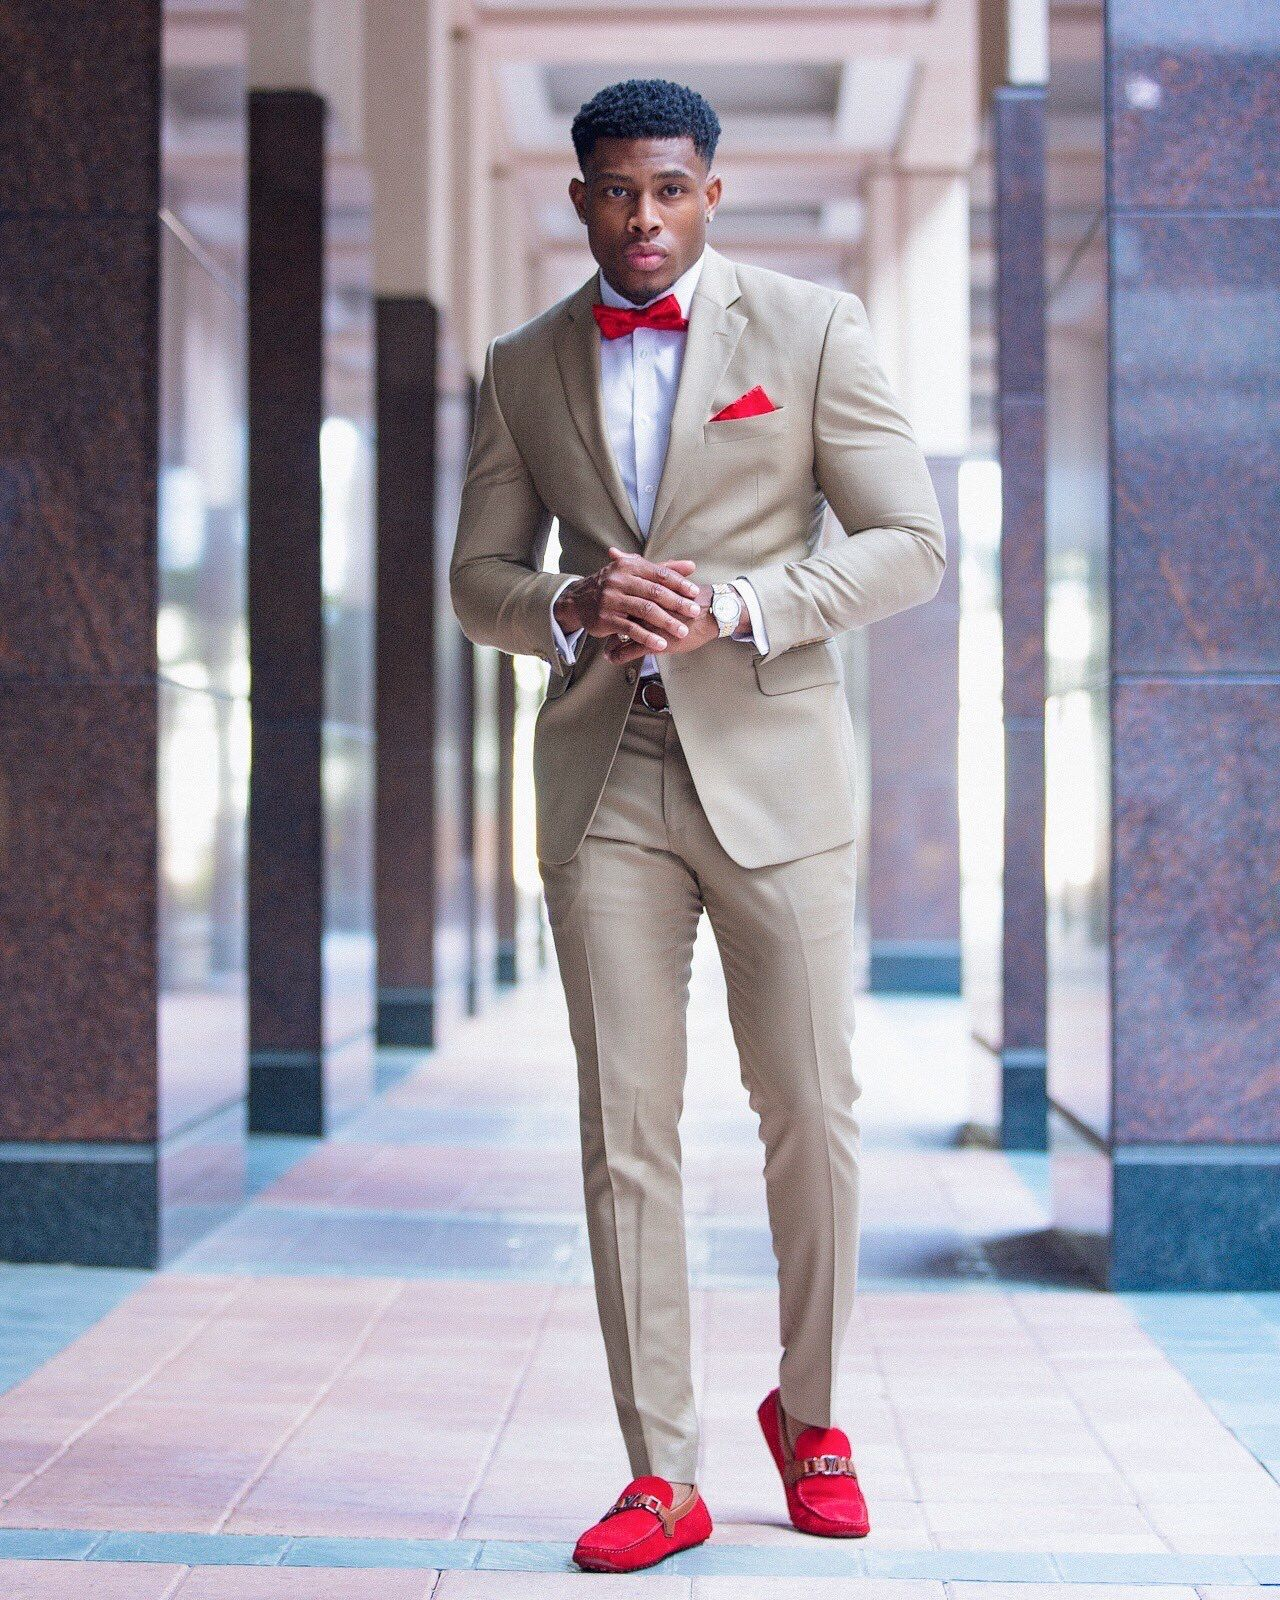 Pin by Andrey C on Костюмы | Pinterest | Swag, Prom and Formal suits